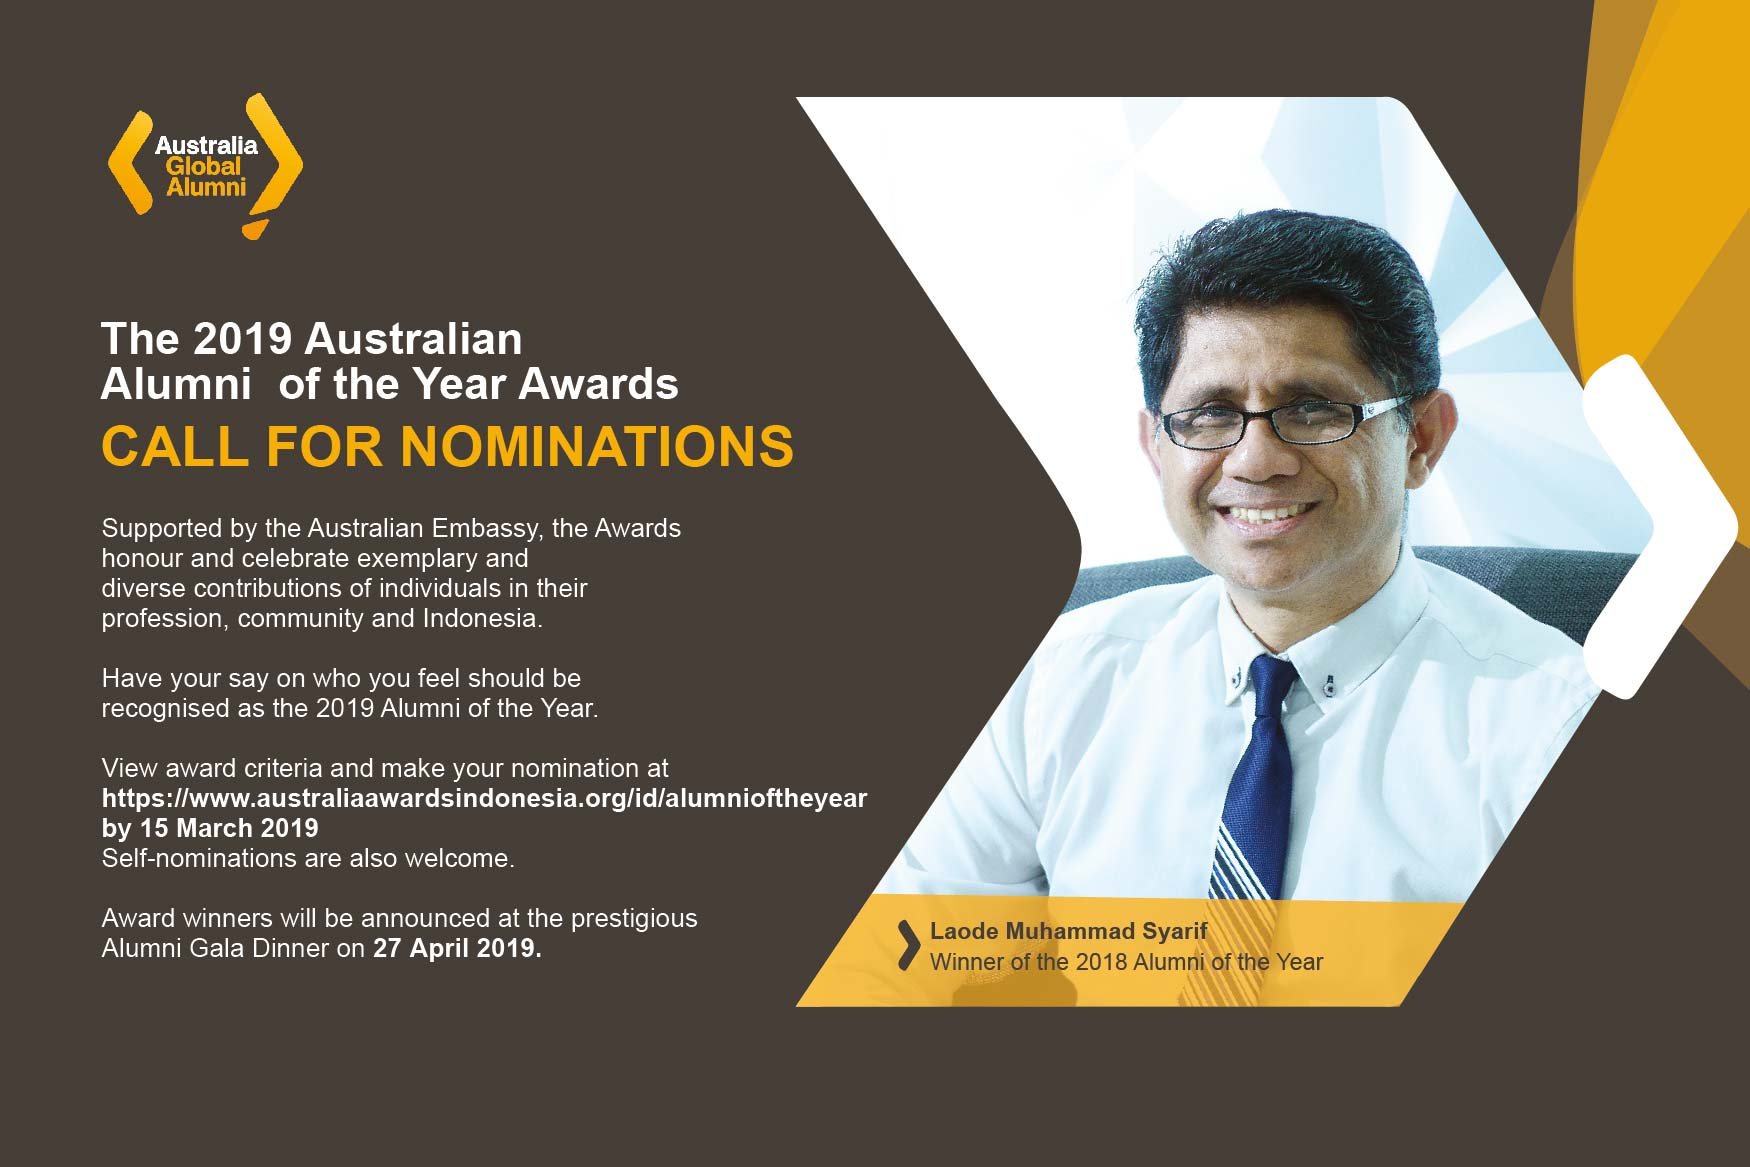 Call for Nominations: The 2019 Australian Alumni of the Year Awards!